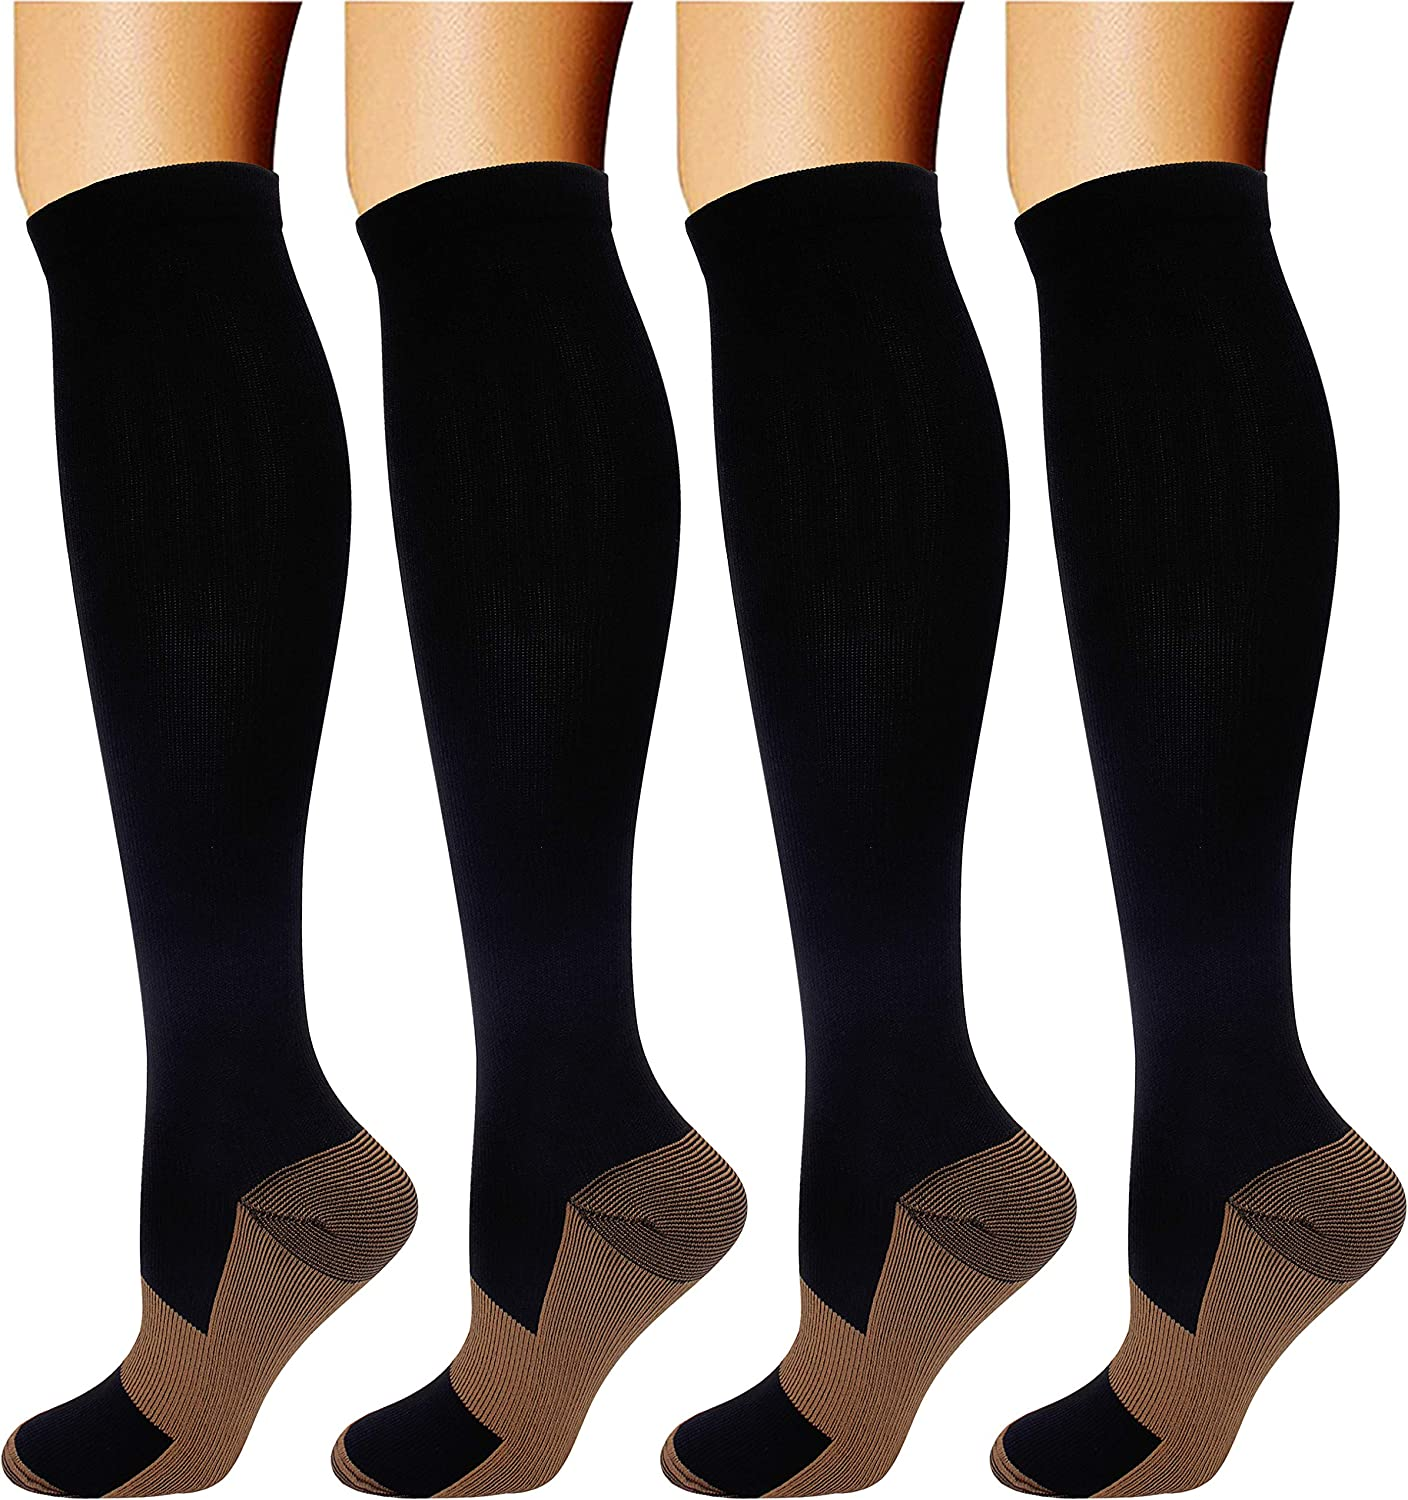 Amazon.com: 4 Pairs Compression Socks for Men recover faster after training